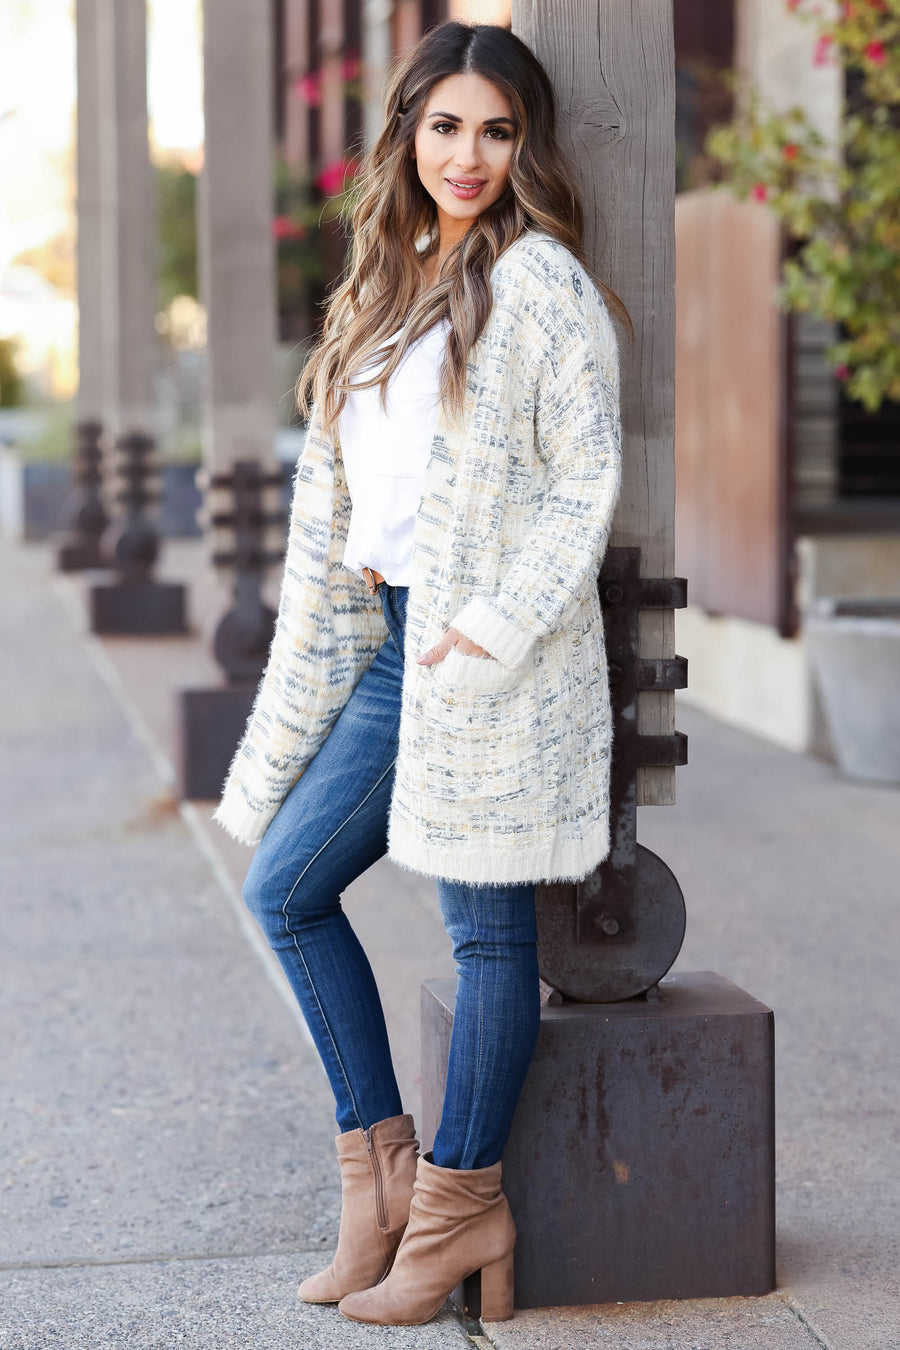 MYSTREE Won't Forget You Tweed Cardigan - Cream closet candy women's trendy tweed open front soft long sleeve cardigan front